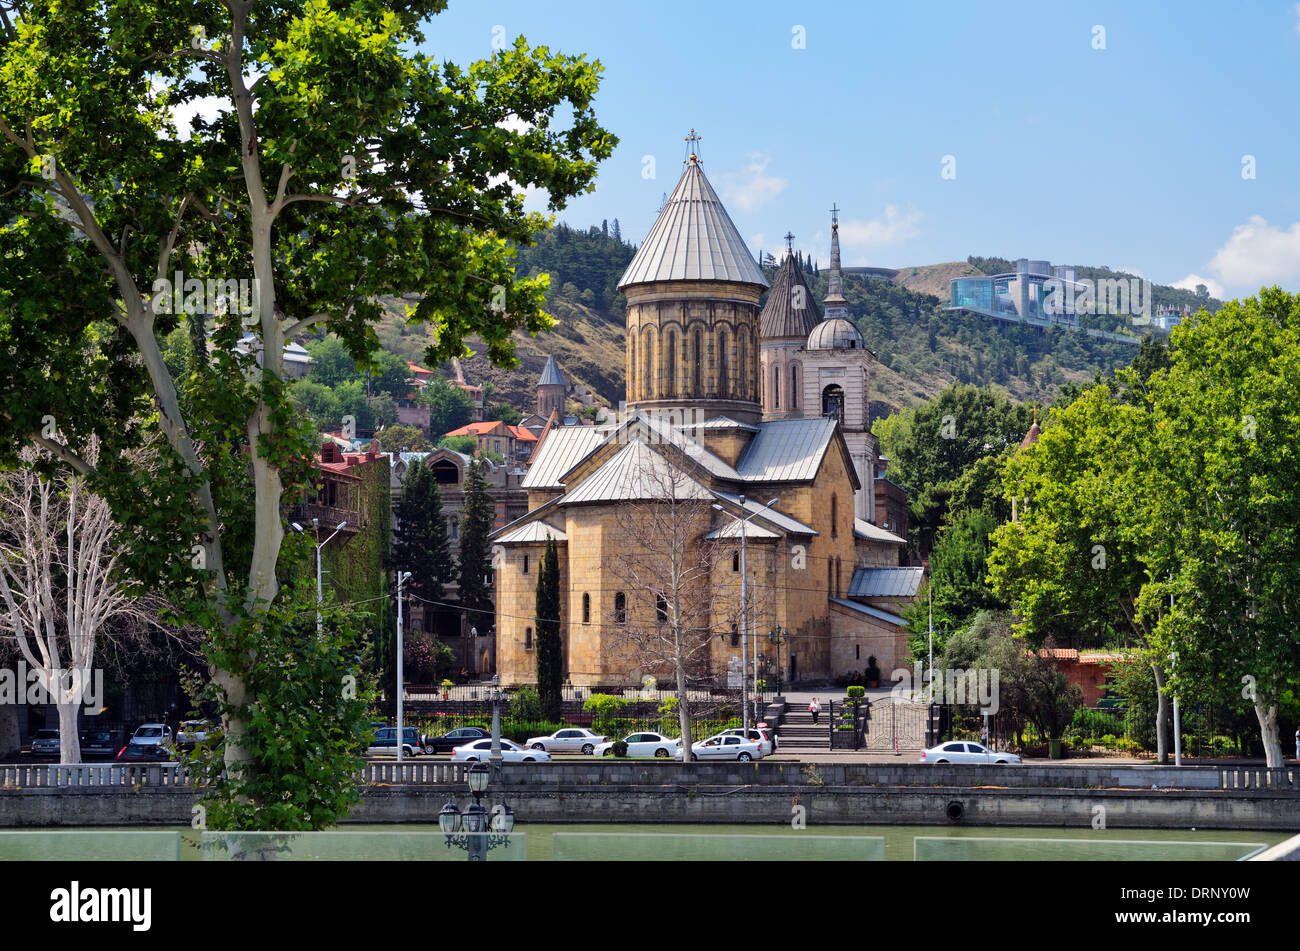 The Sioni Cathedral of the Dormition, built in 7th century, Tbilisi, Georgia - Aug 2013 Stock Photo